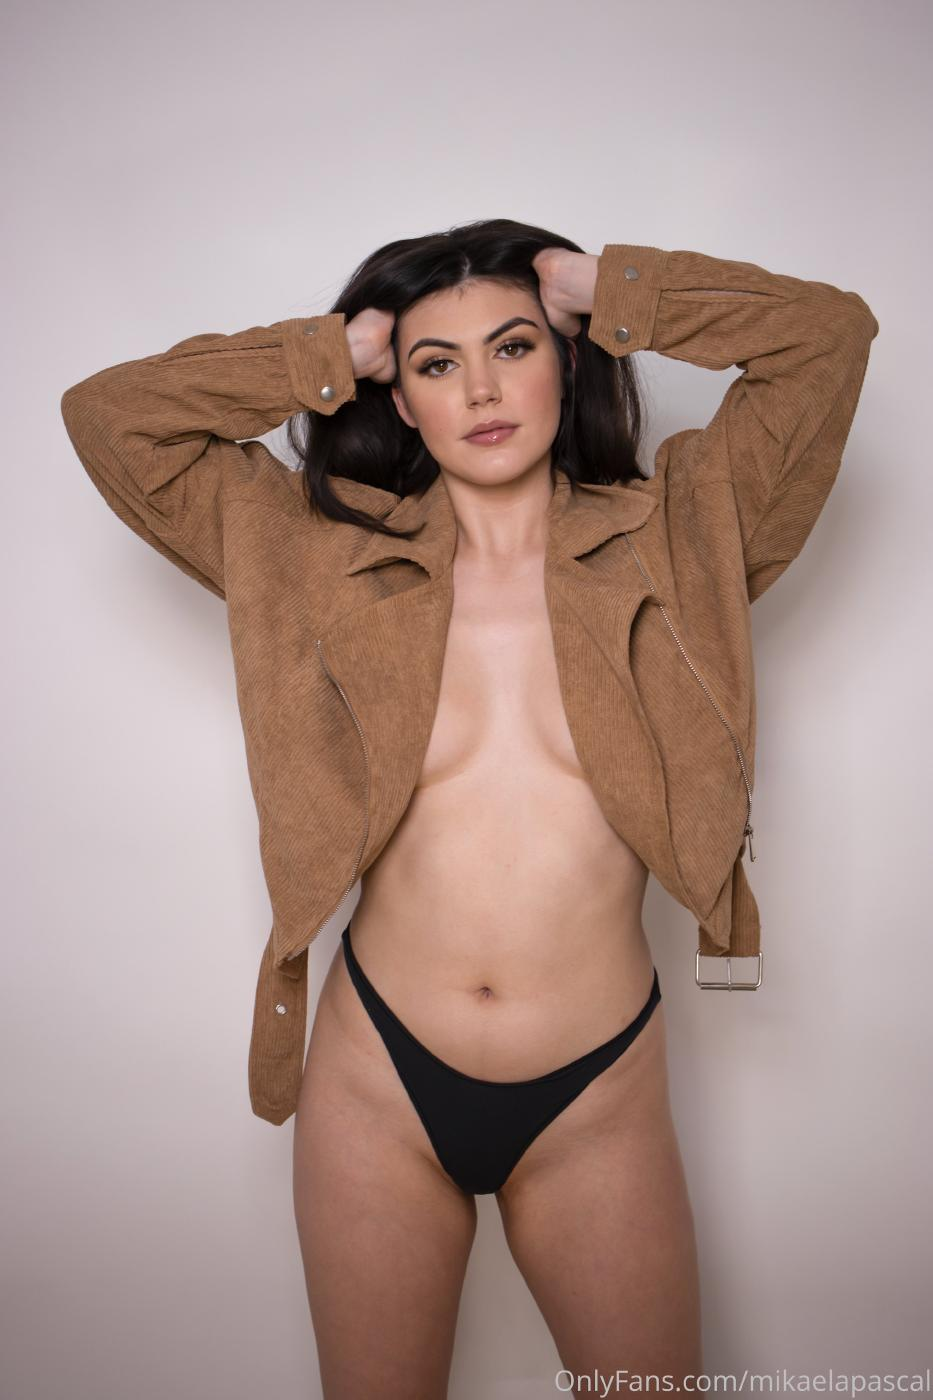 Mikaela Pascal Topless Onlyfans Set Leaked 0006